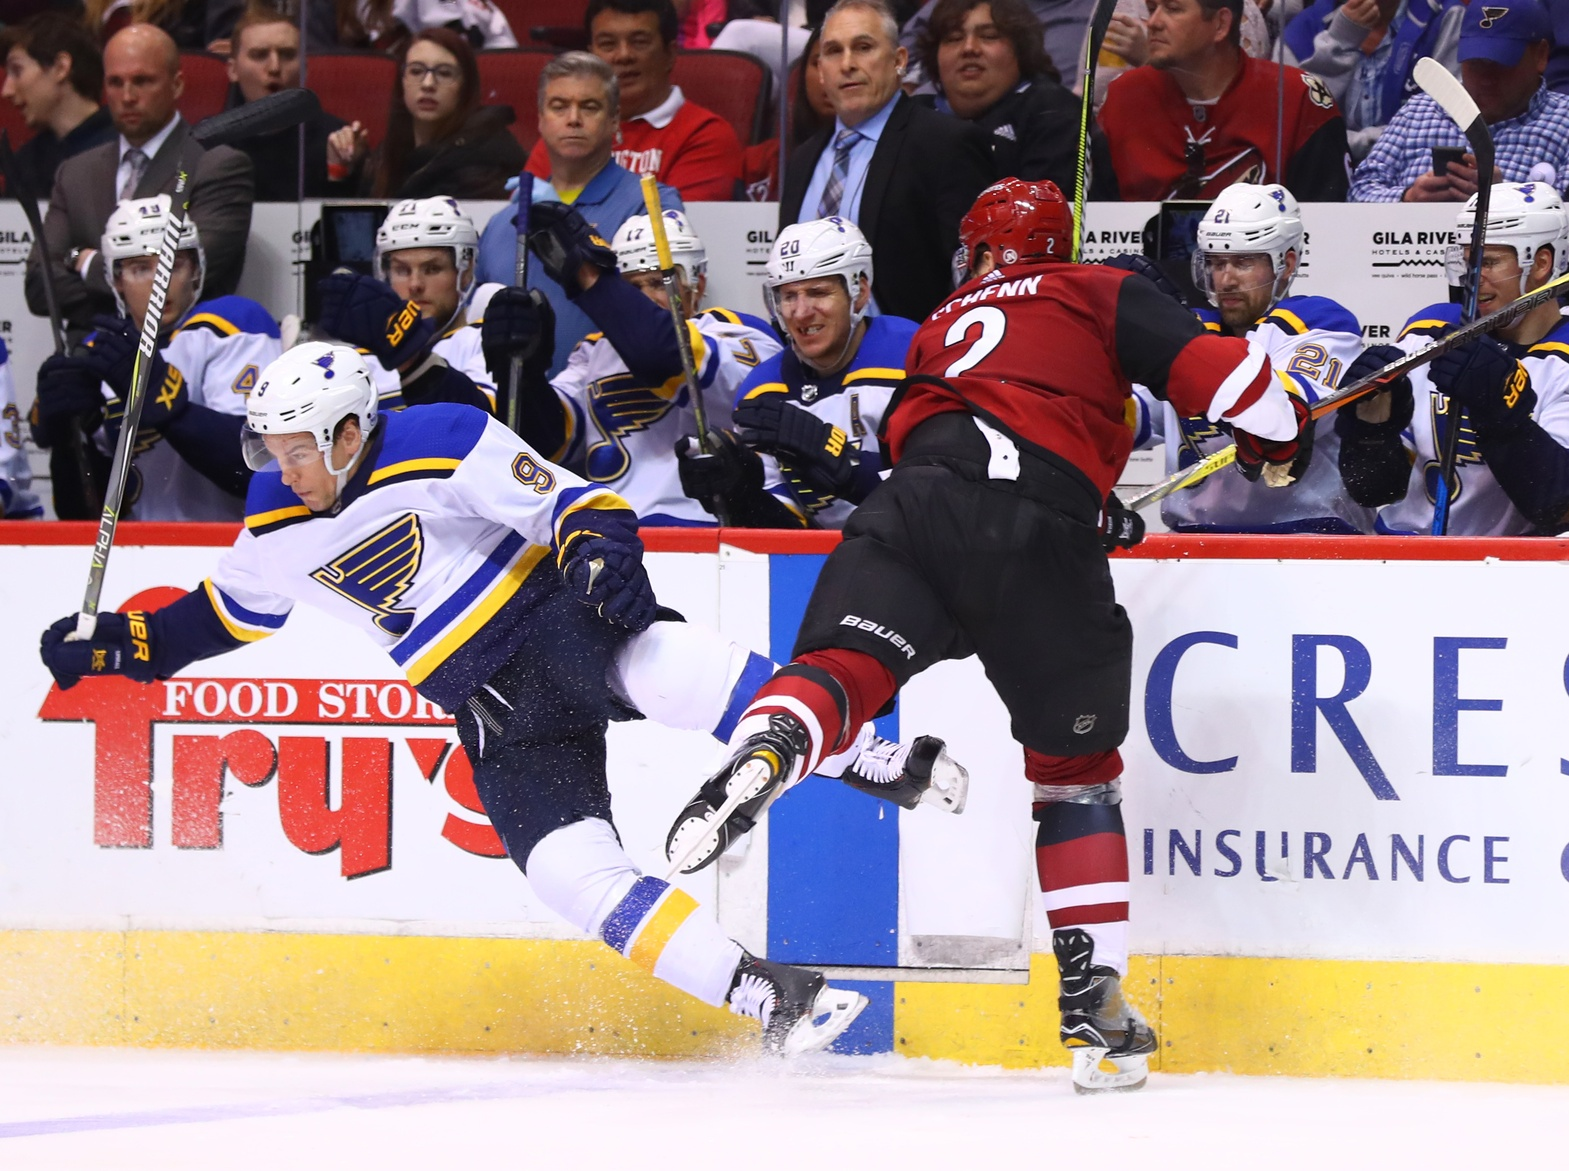 Scottie Upshall's unfortunate injury may end his time with the Blues